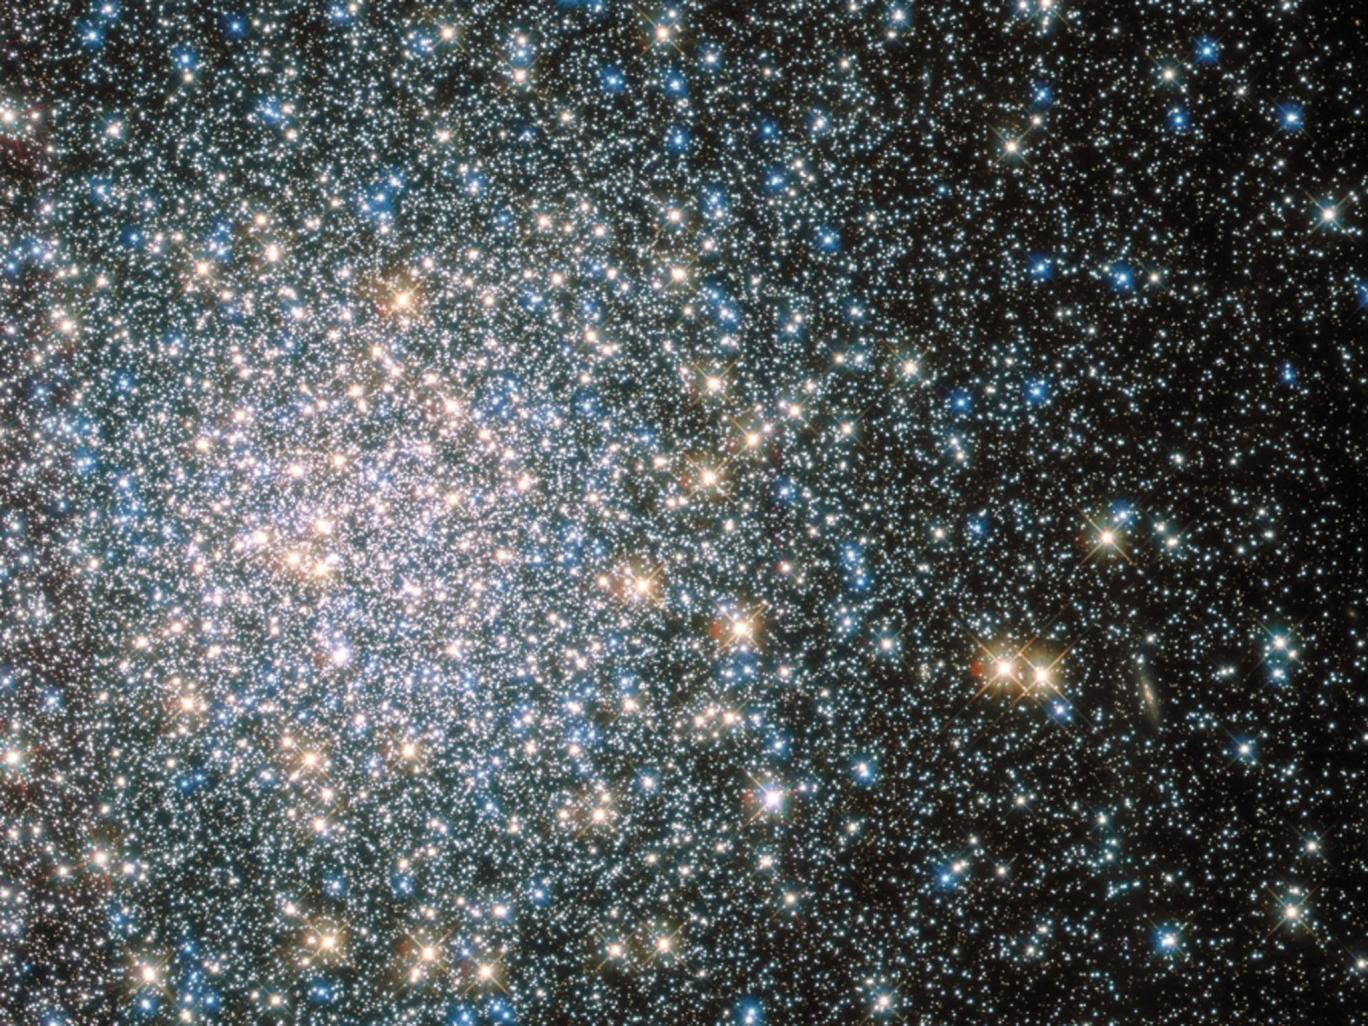 Nasa has released this image from the Hubble Space Telescope of an ancient star cluster